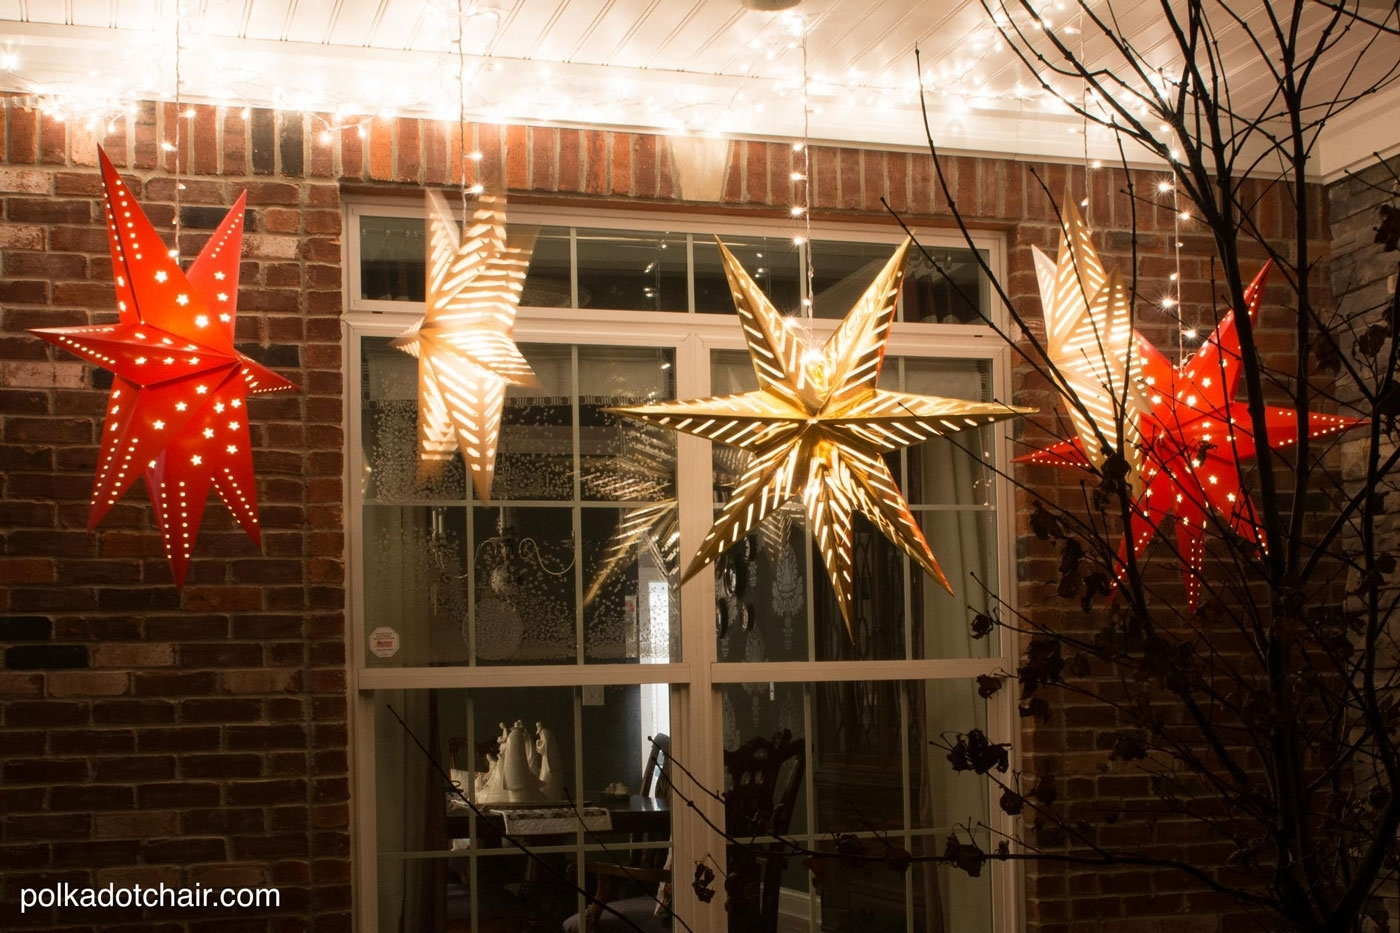 Hanging Star Lanterns; A Christmas Front Porch Decorating Idea - The with regard to Outdoor Lanterns For Front Porch (Image 11 of 20)